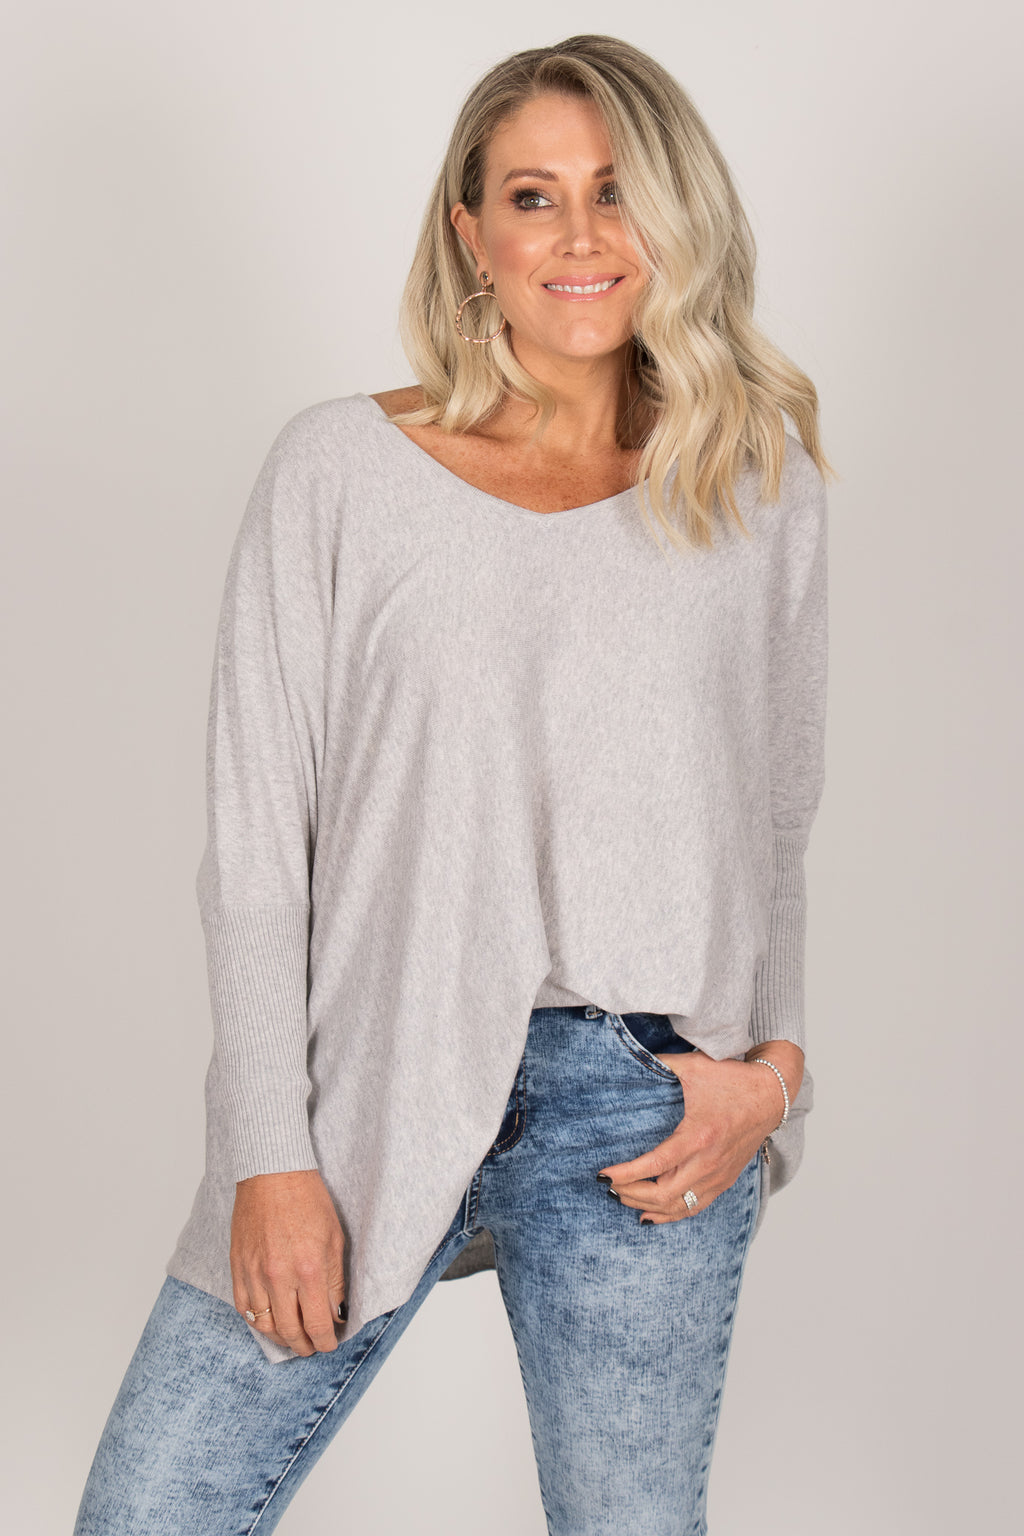 Delia Knit Top in Grey